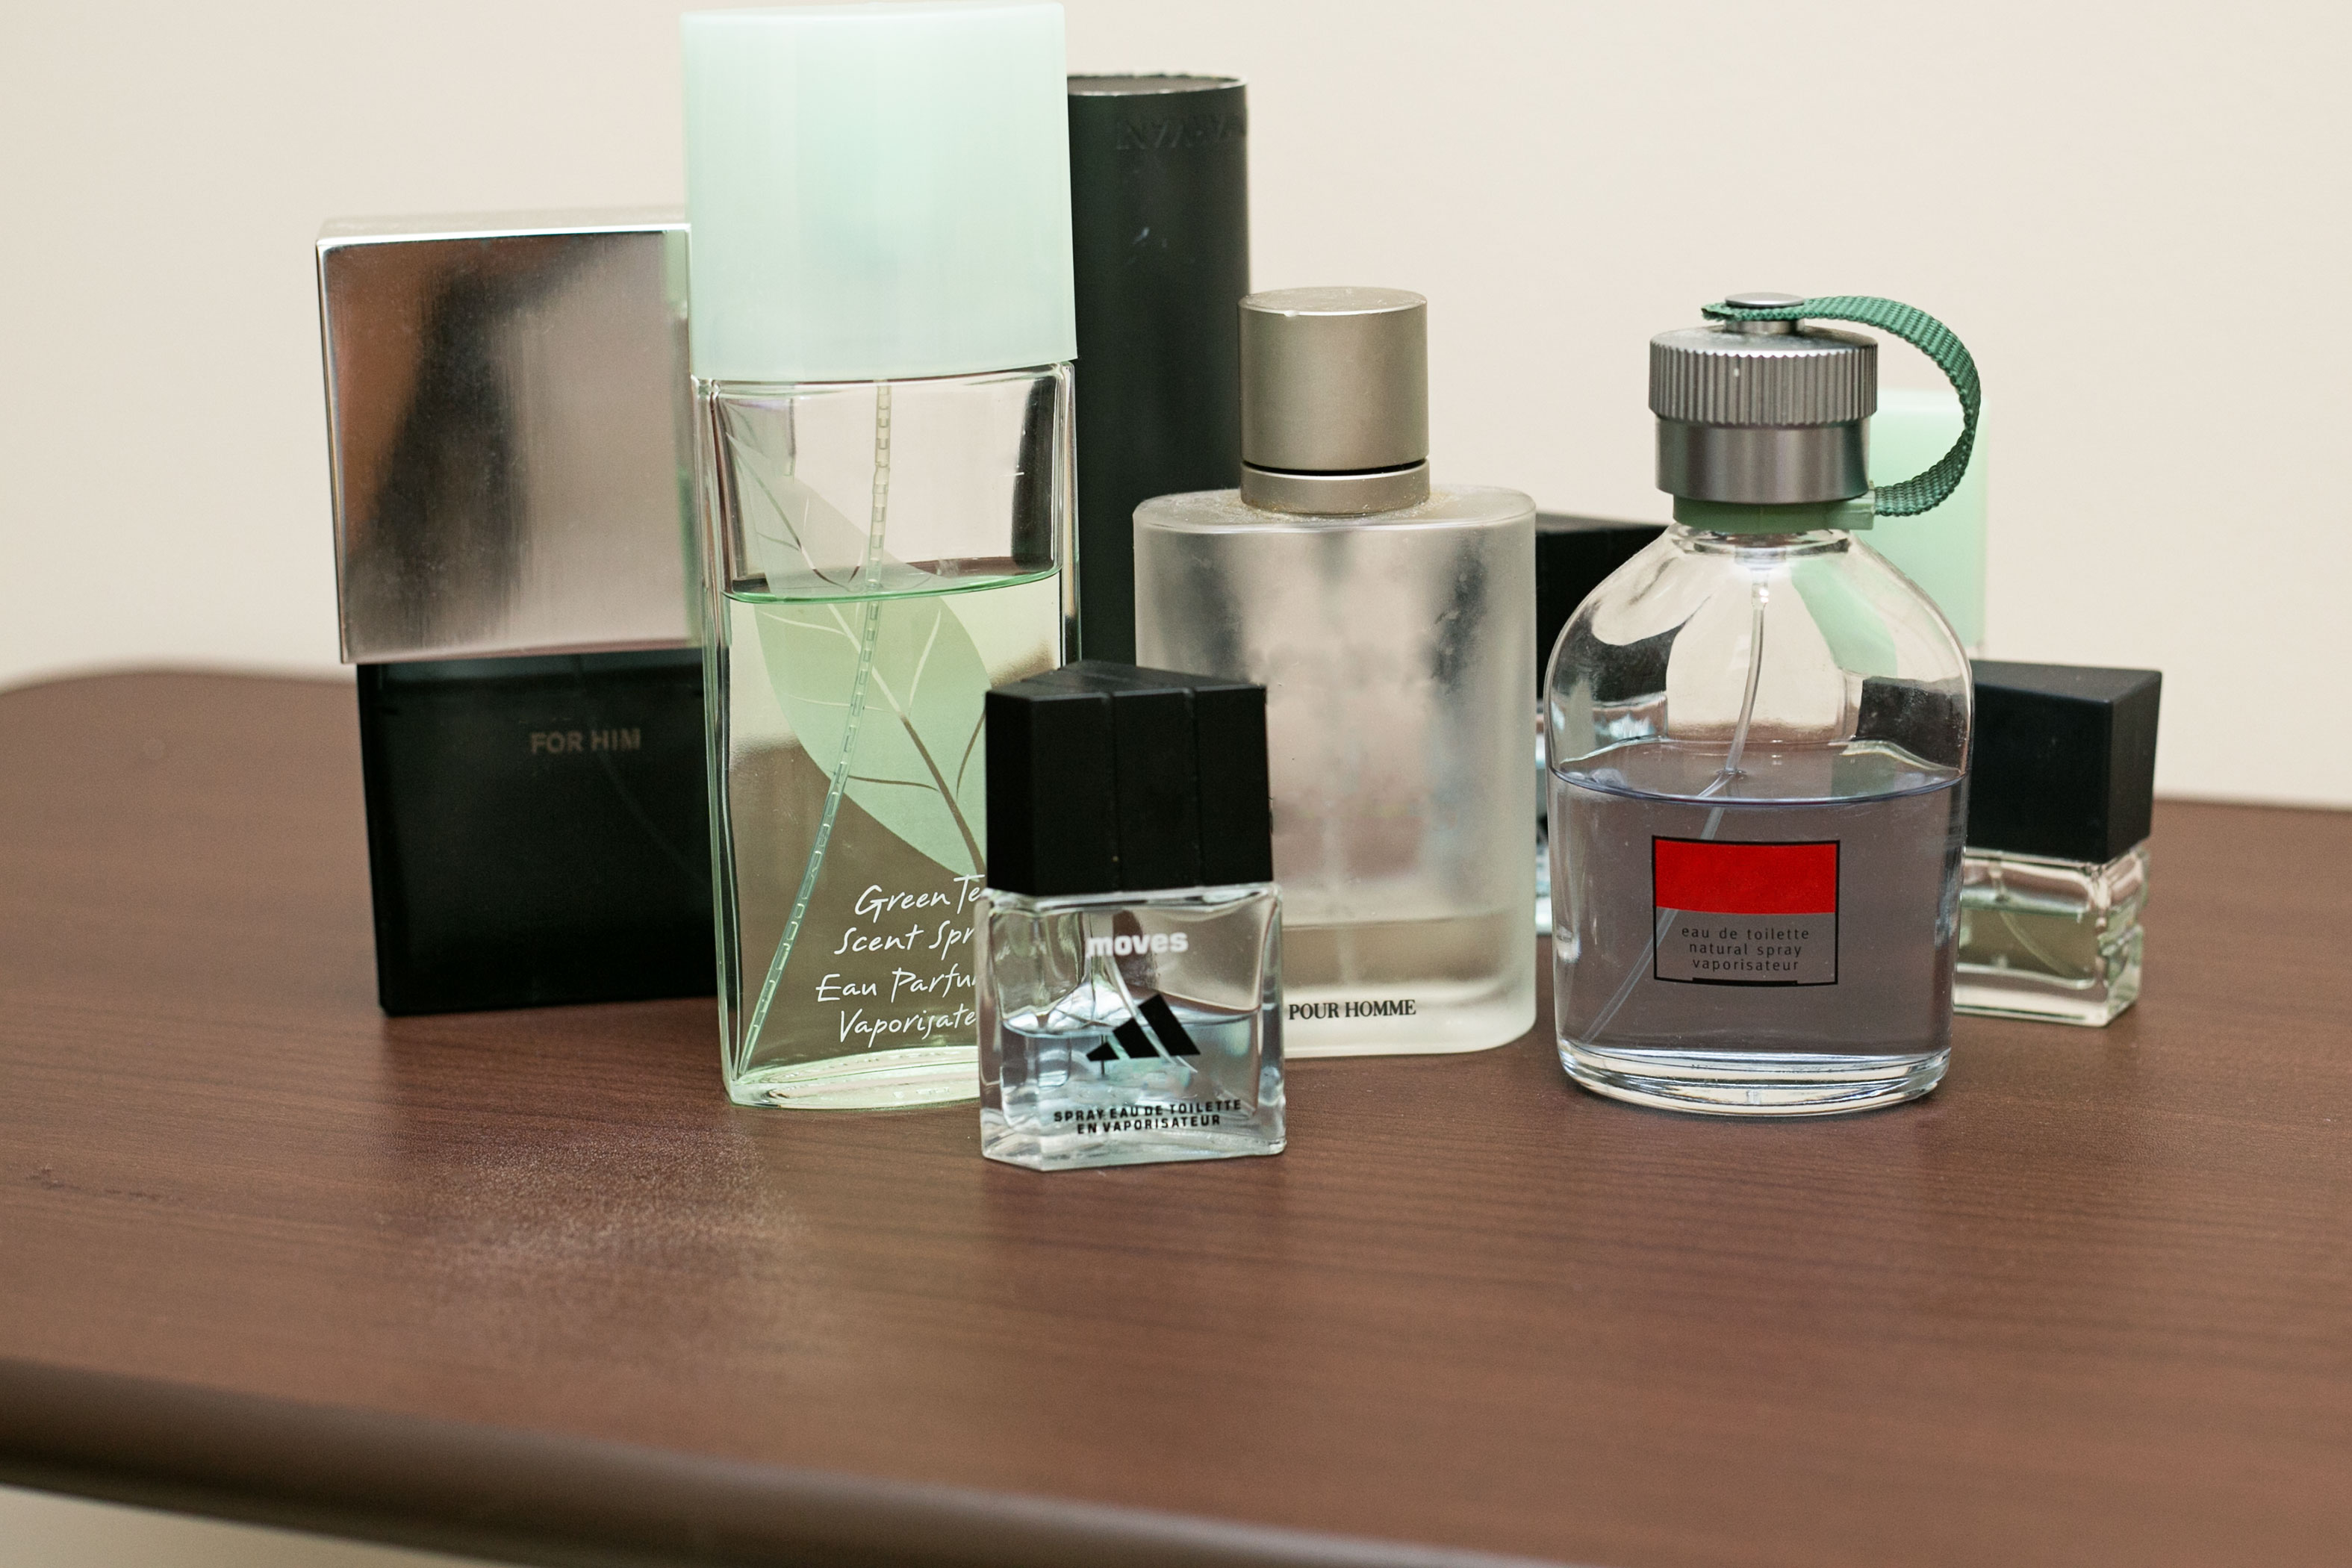 Parfum Vs Toilette Our Everyday Life